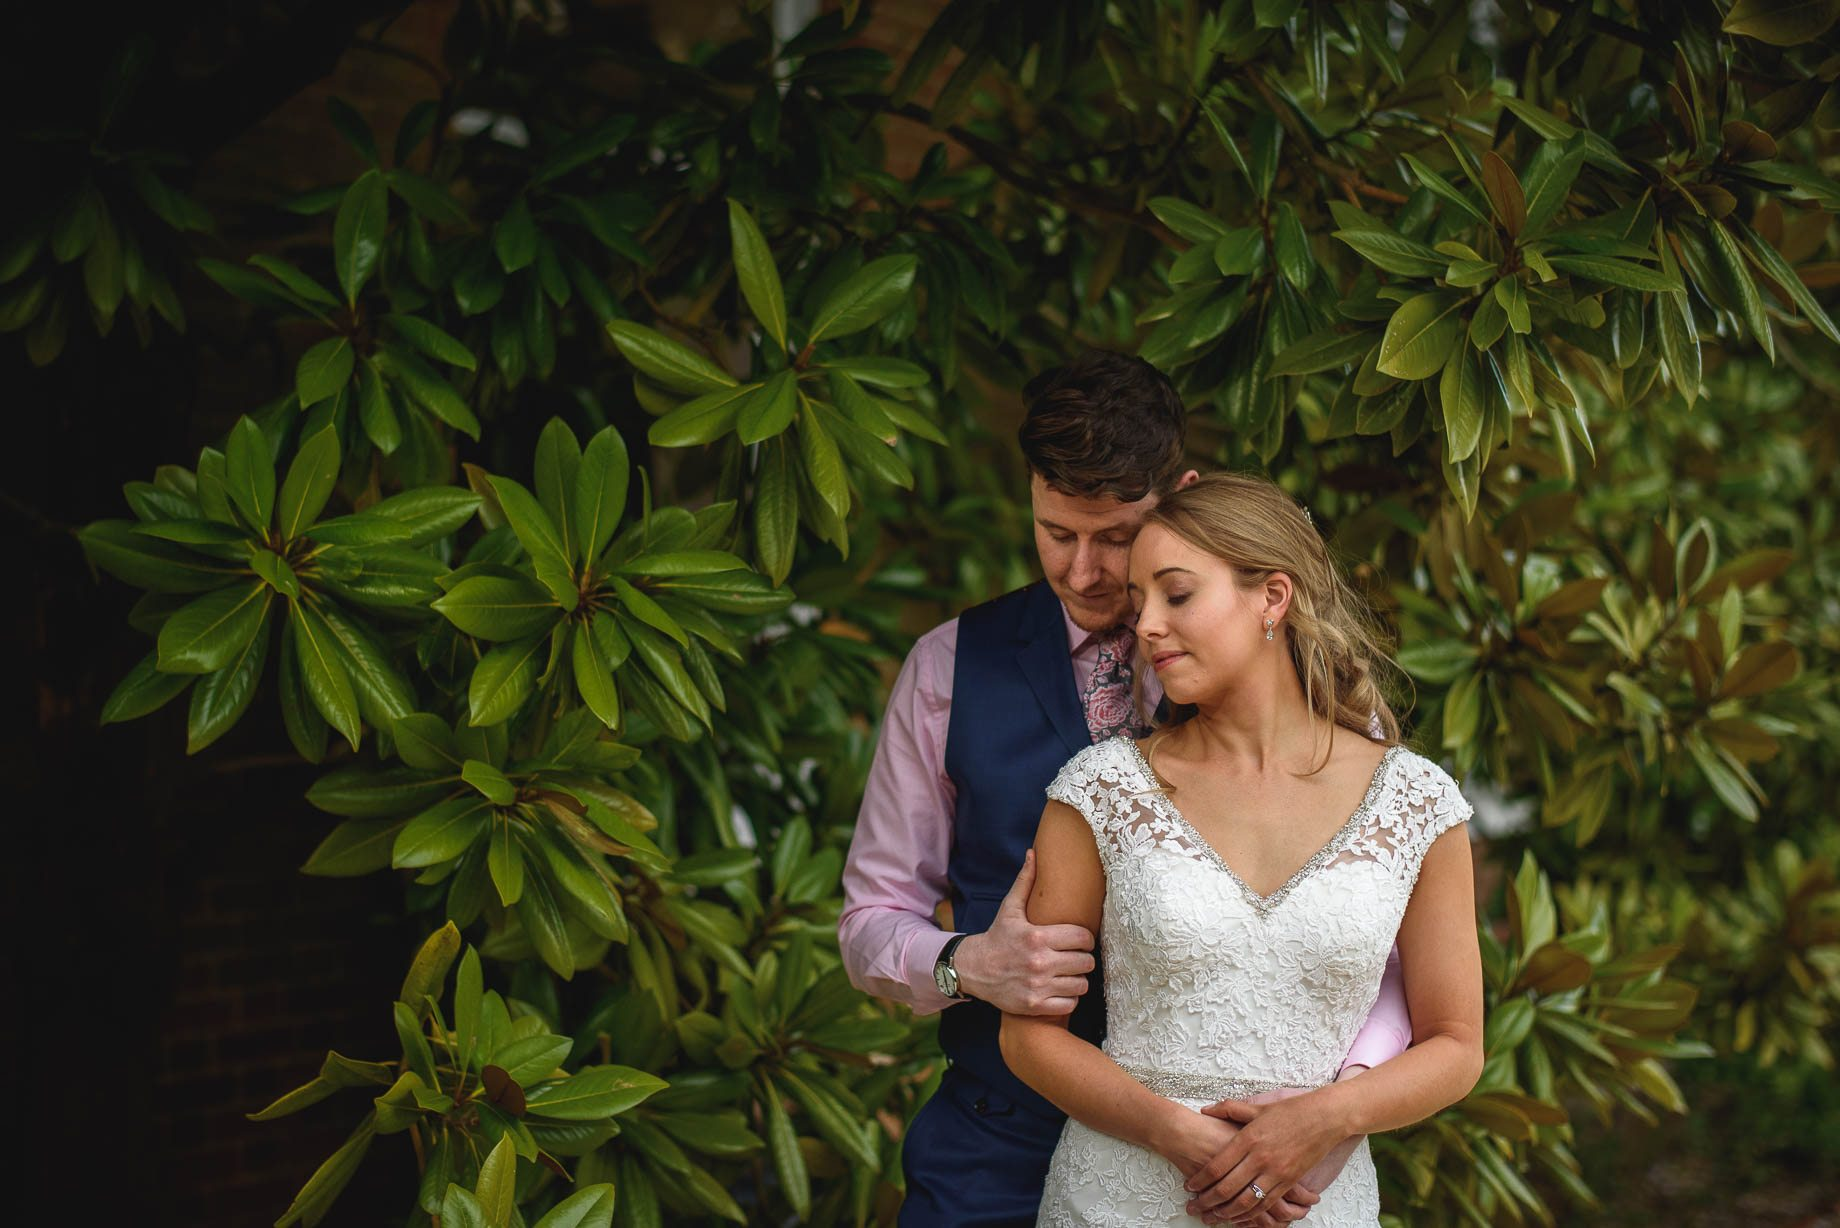 Hampshire wedding photography by Guy Collier - Emily and Tom (134 of 164)